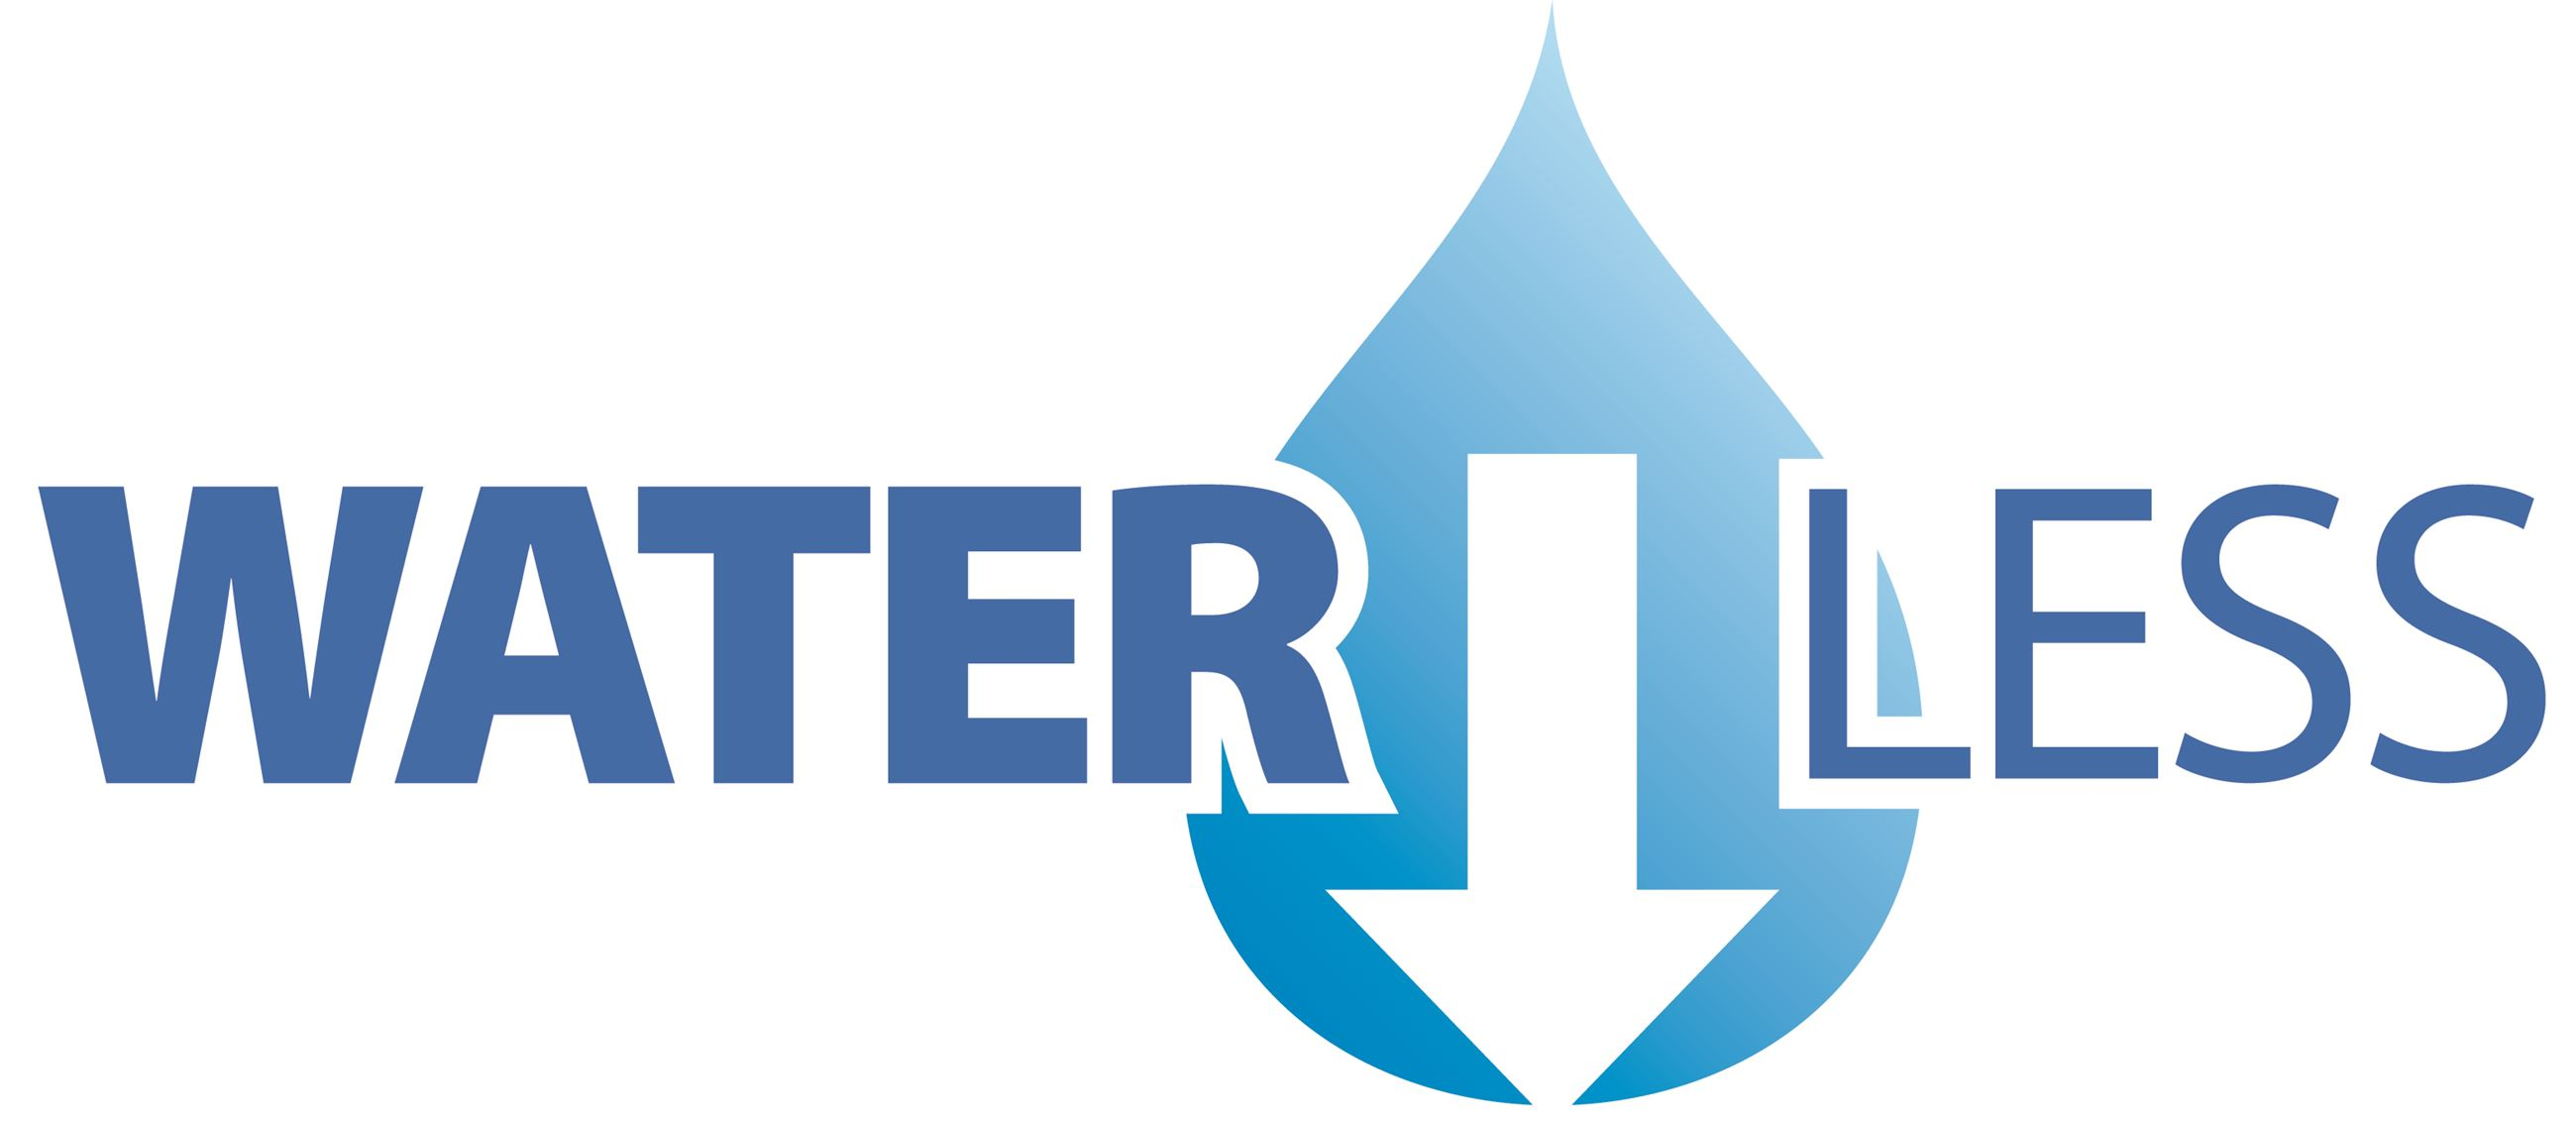 waterless logo